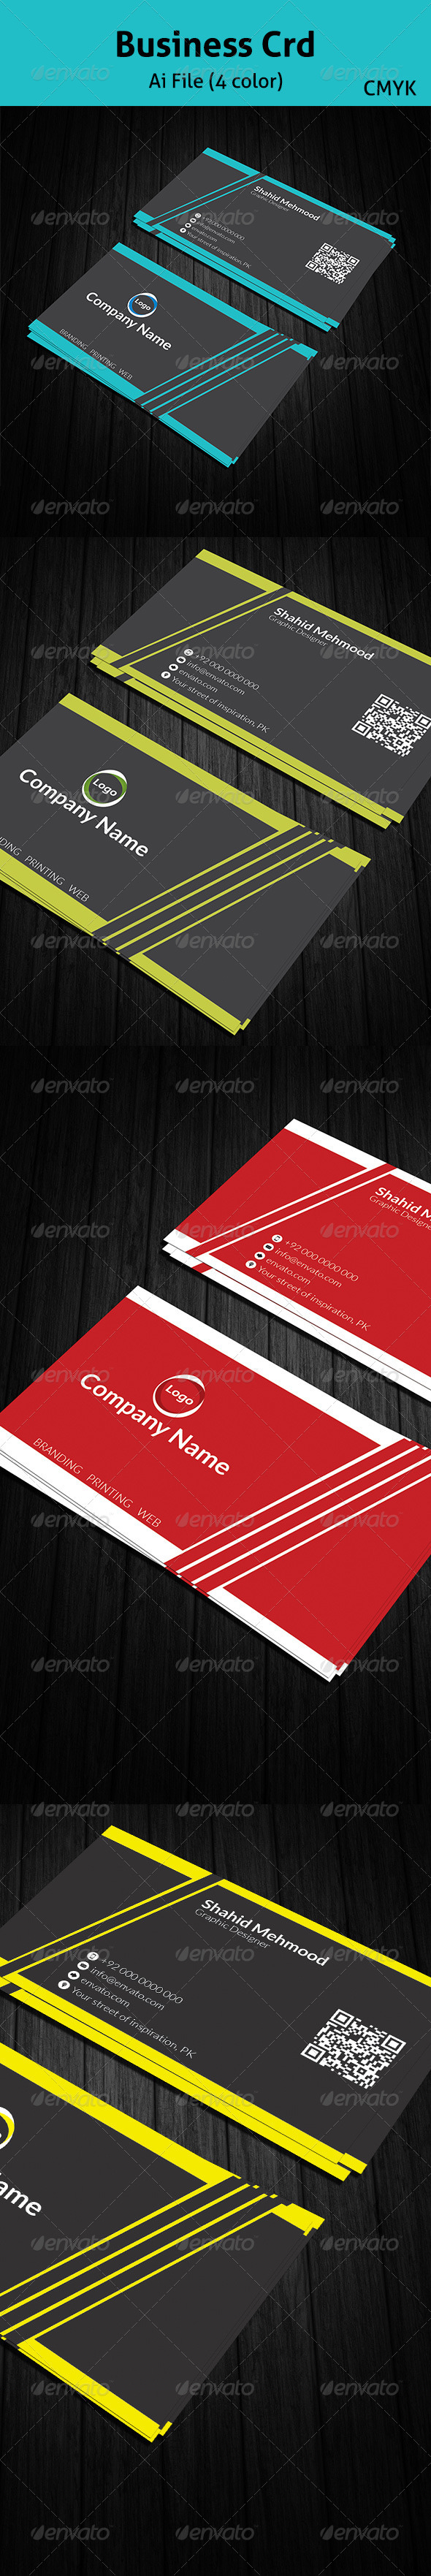 GraphicRiver Business Card 6905991